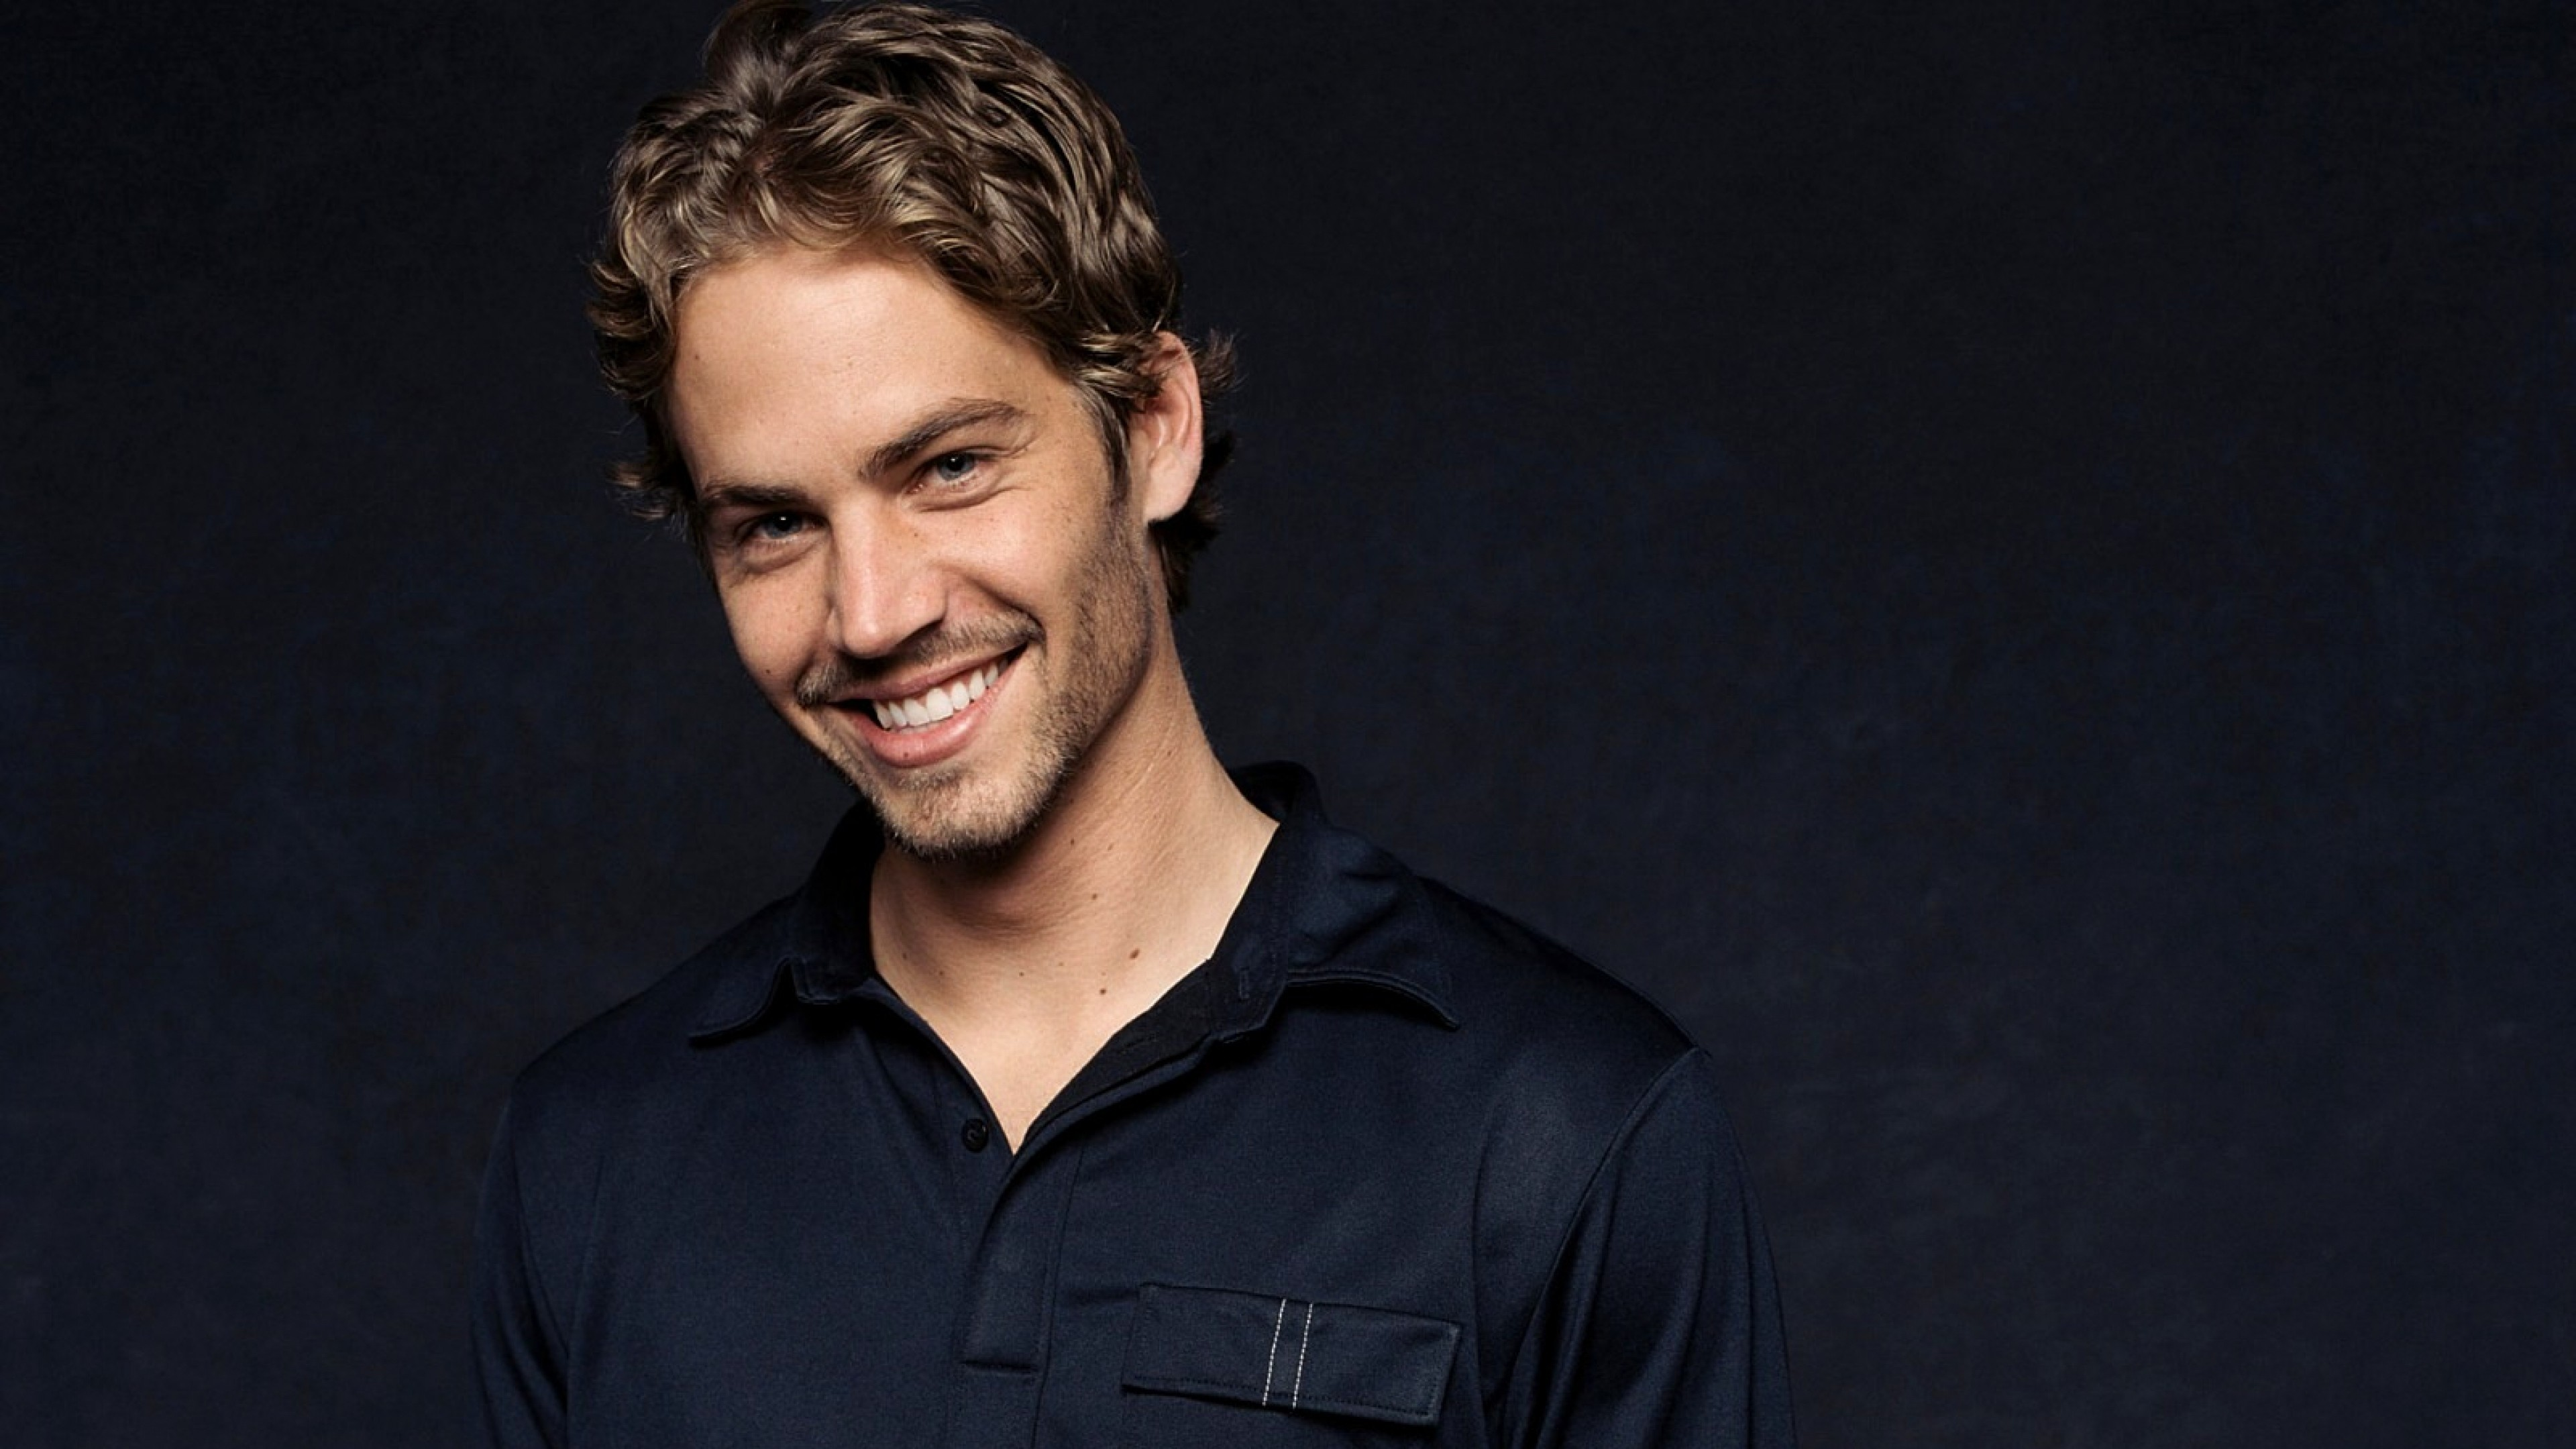 Paul Walker Wallpaper HD (75+ images)